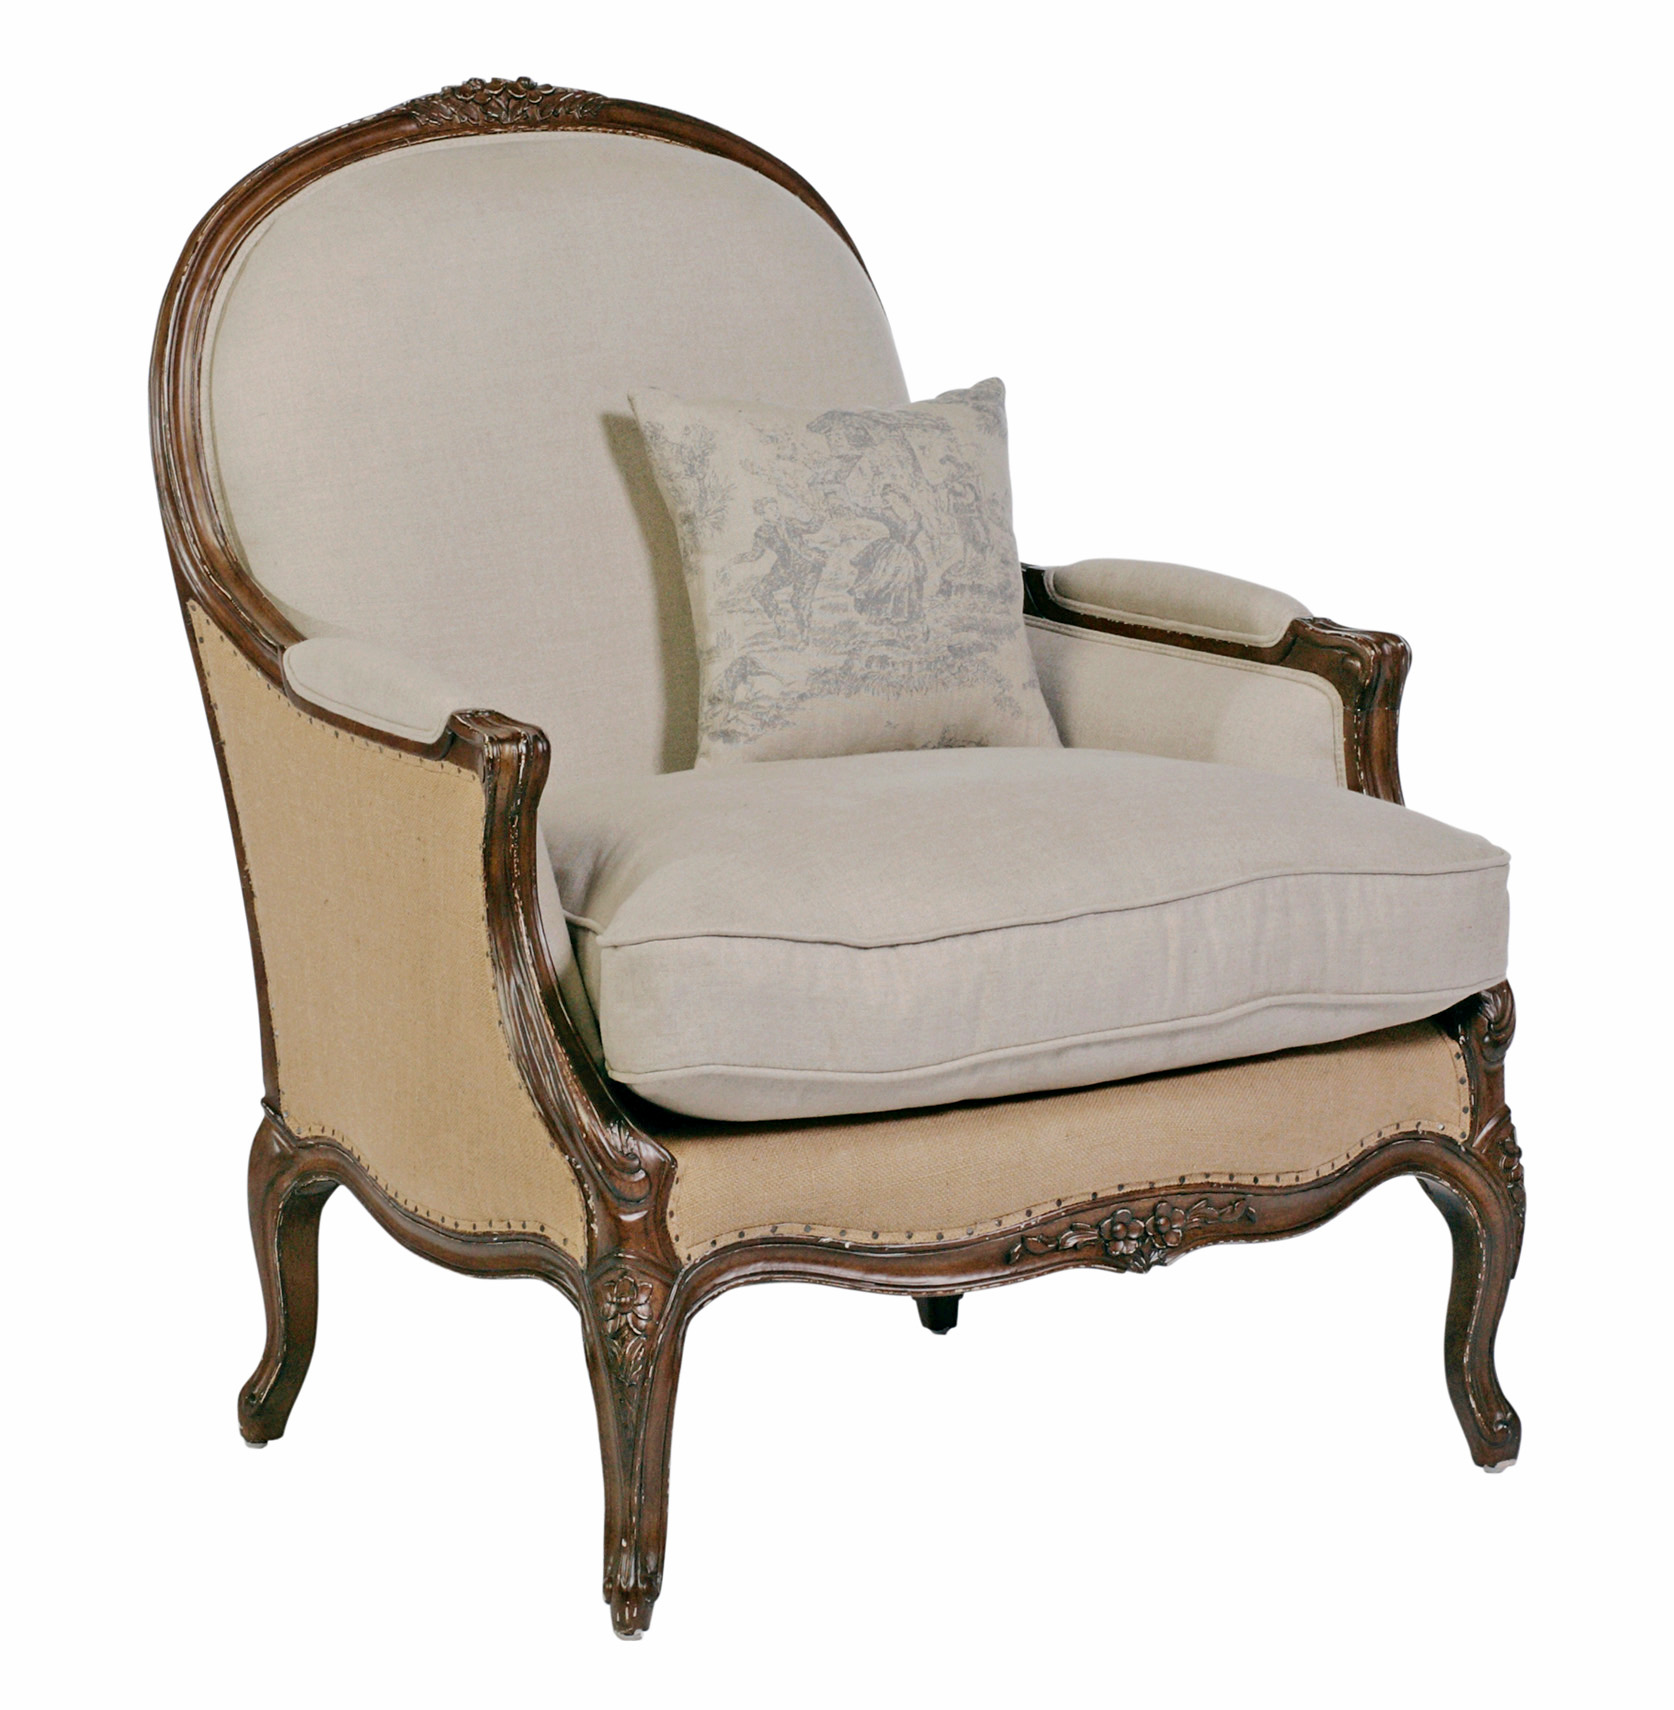 Oversized Accent Chair Chloe Oversized French Country Burlap Linen Bergere Accent